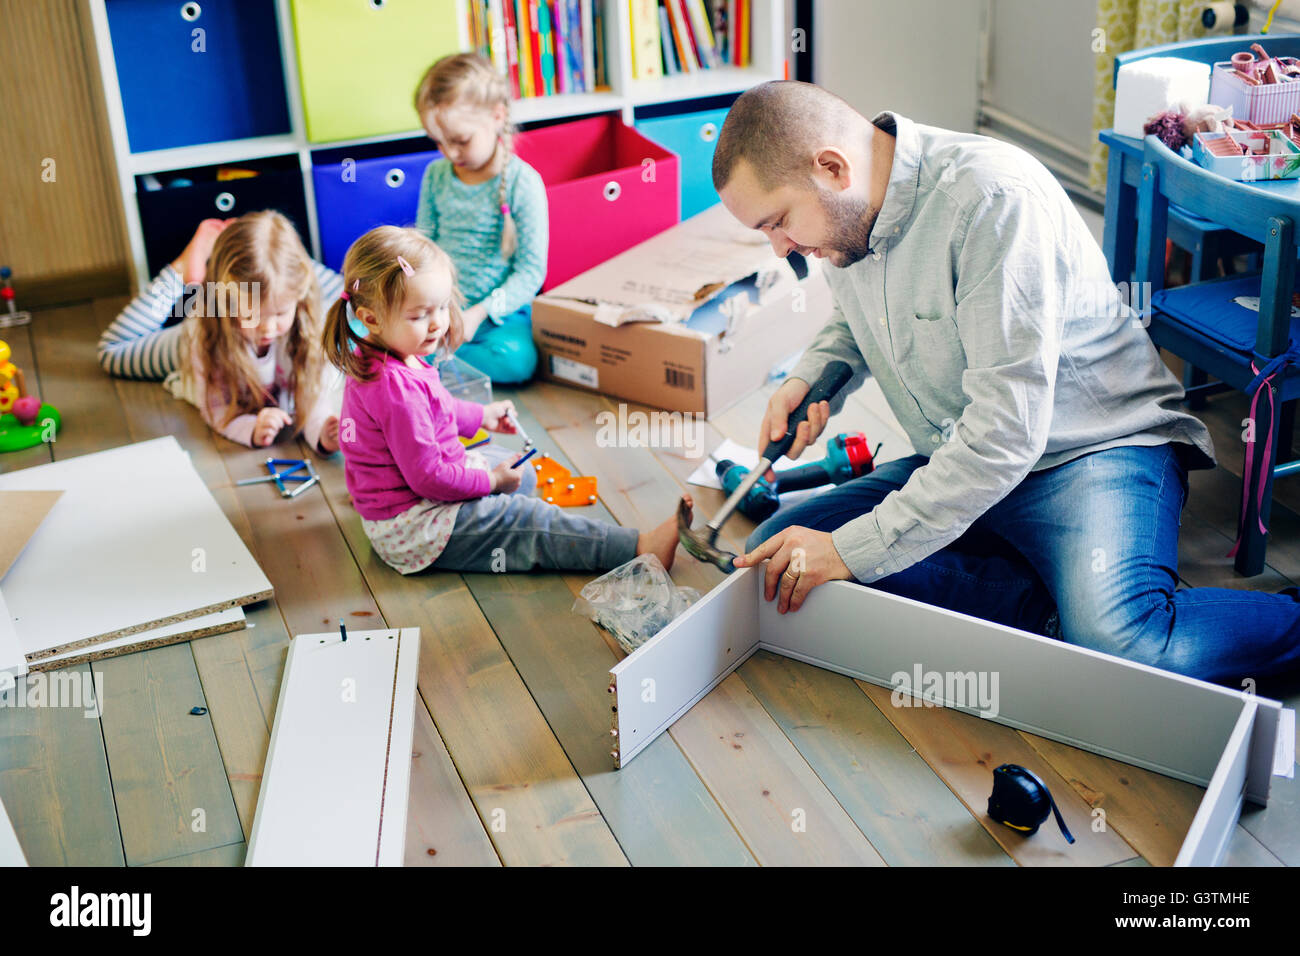 Finland, Father building cabinet for daughters (12-17 months, 2-3) in nursery - Stock Image